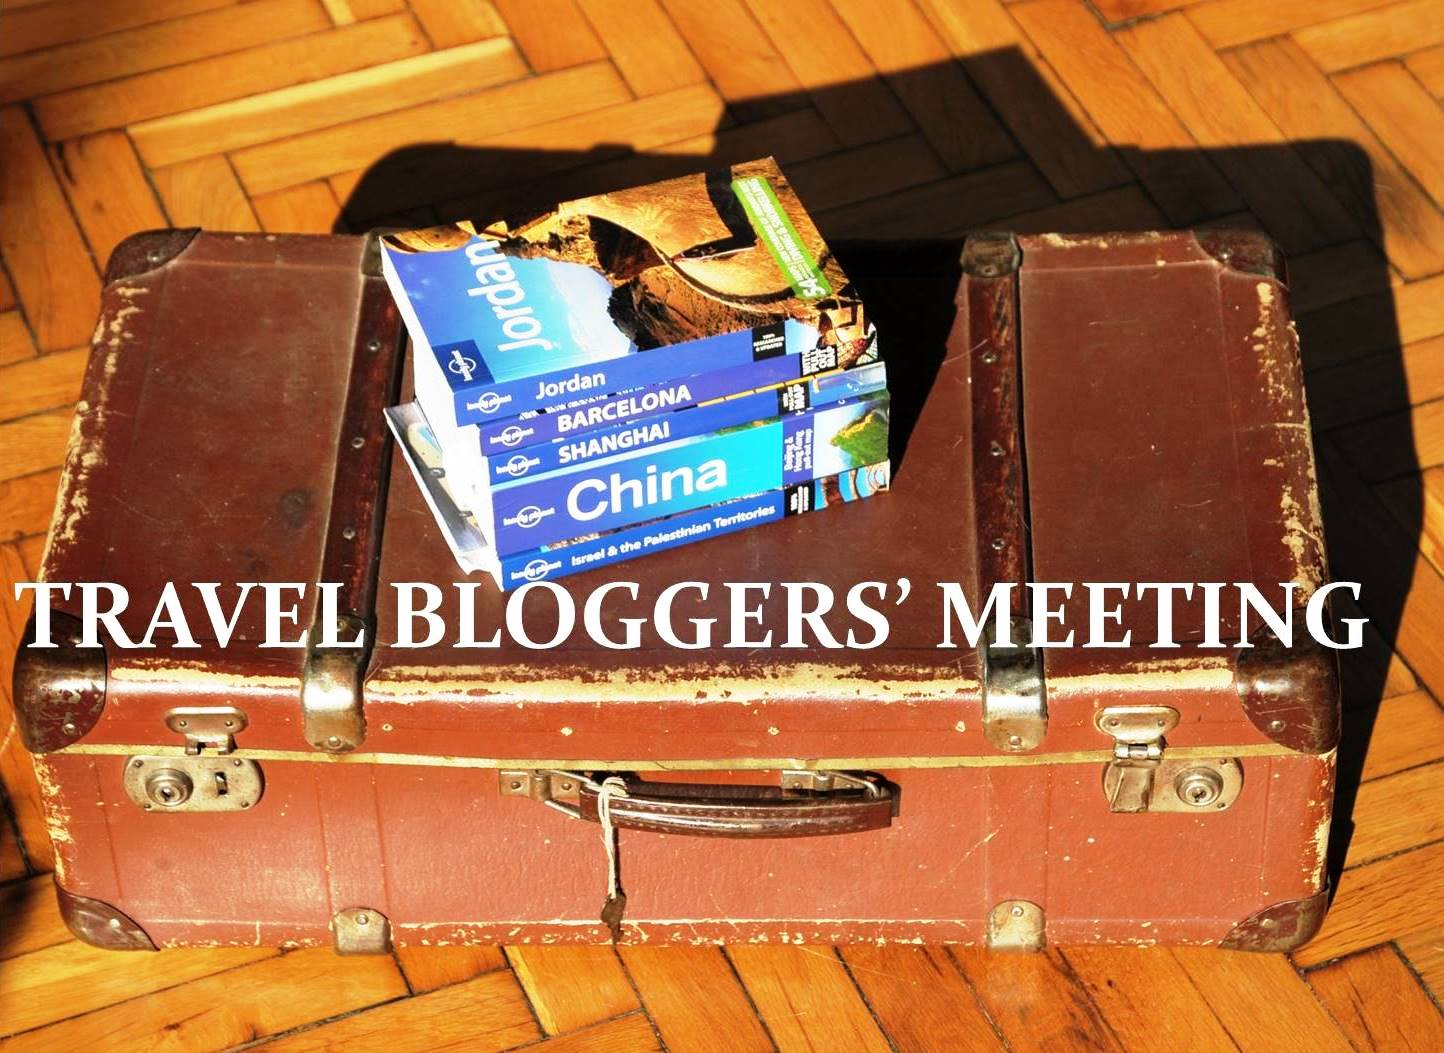 TRAVEL BLOGERS MEETING